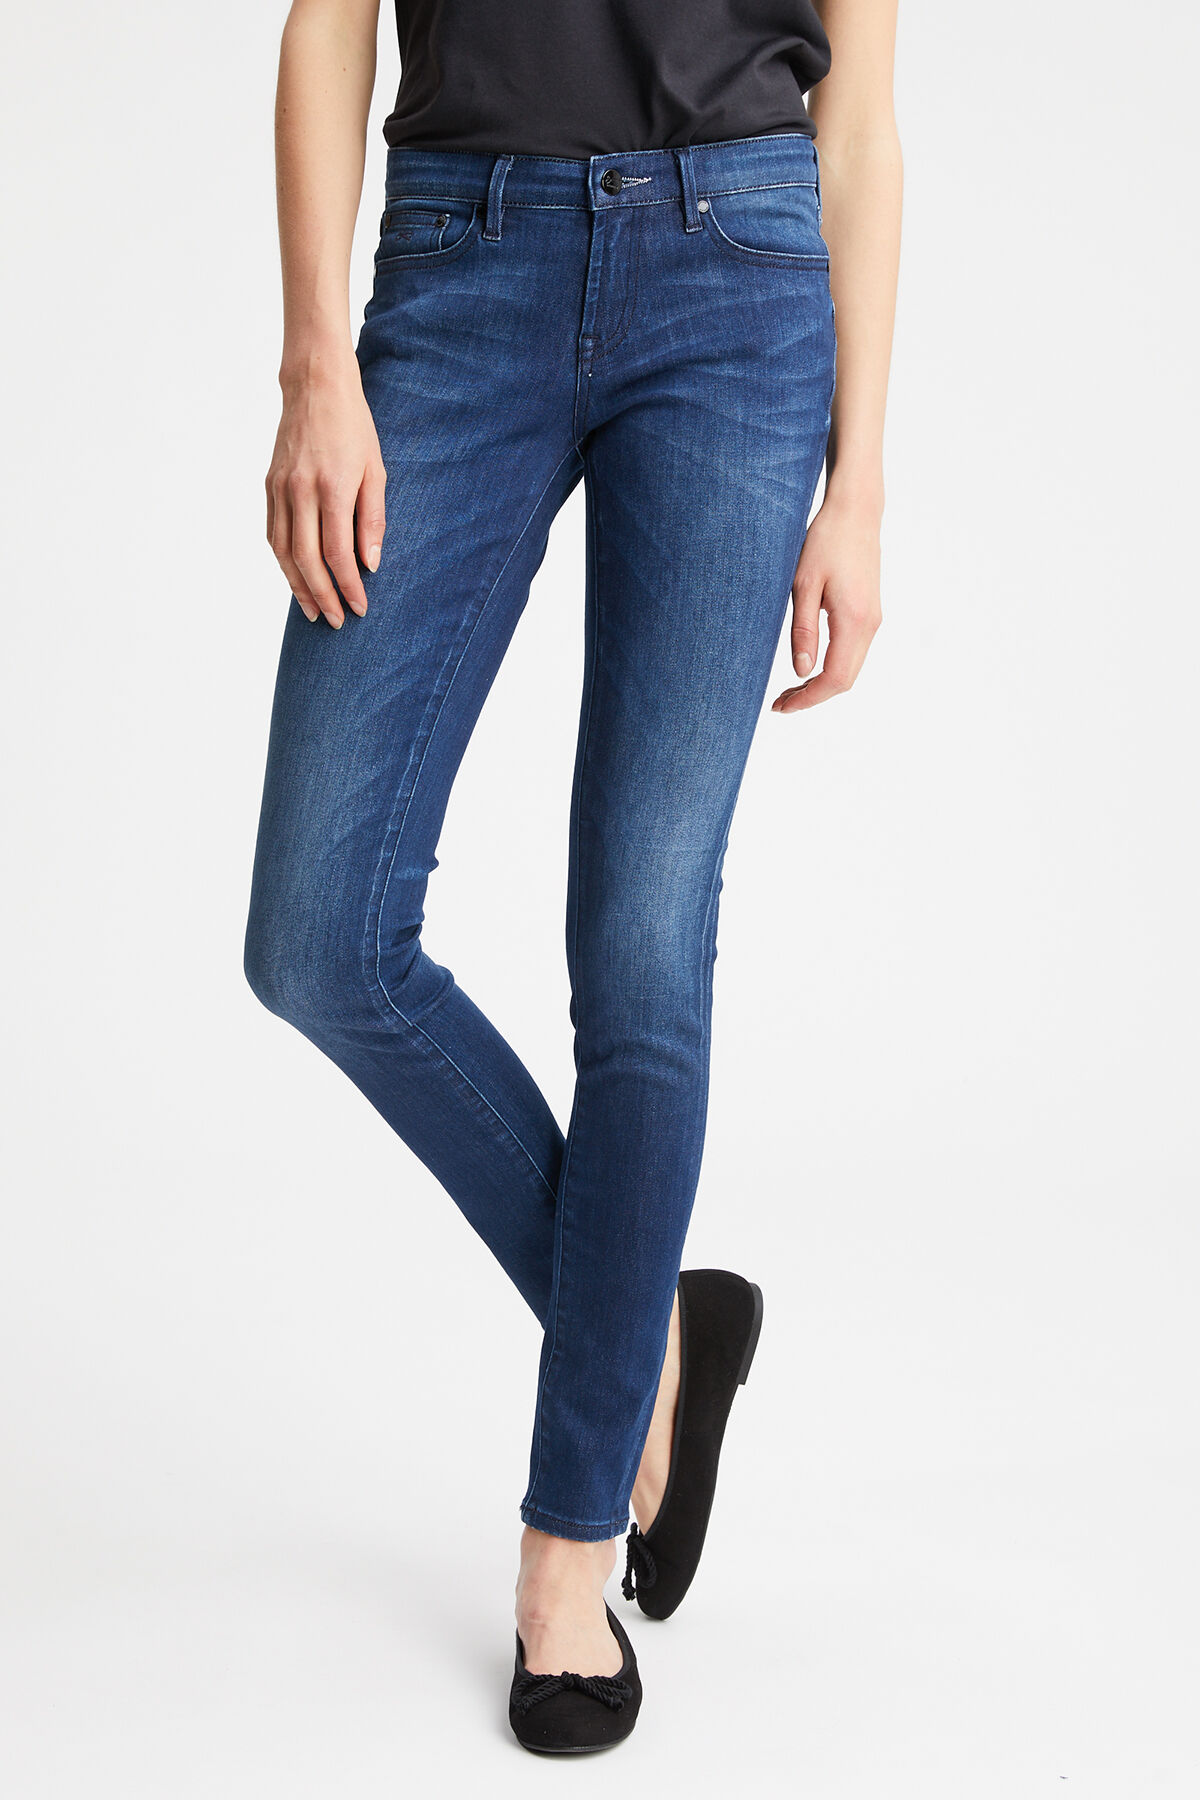 SHARP Dark-Aged, Worn Denim - Mid-Rise, Skinny Fit